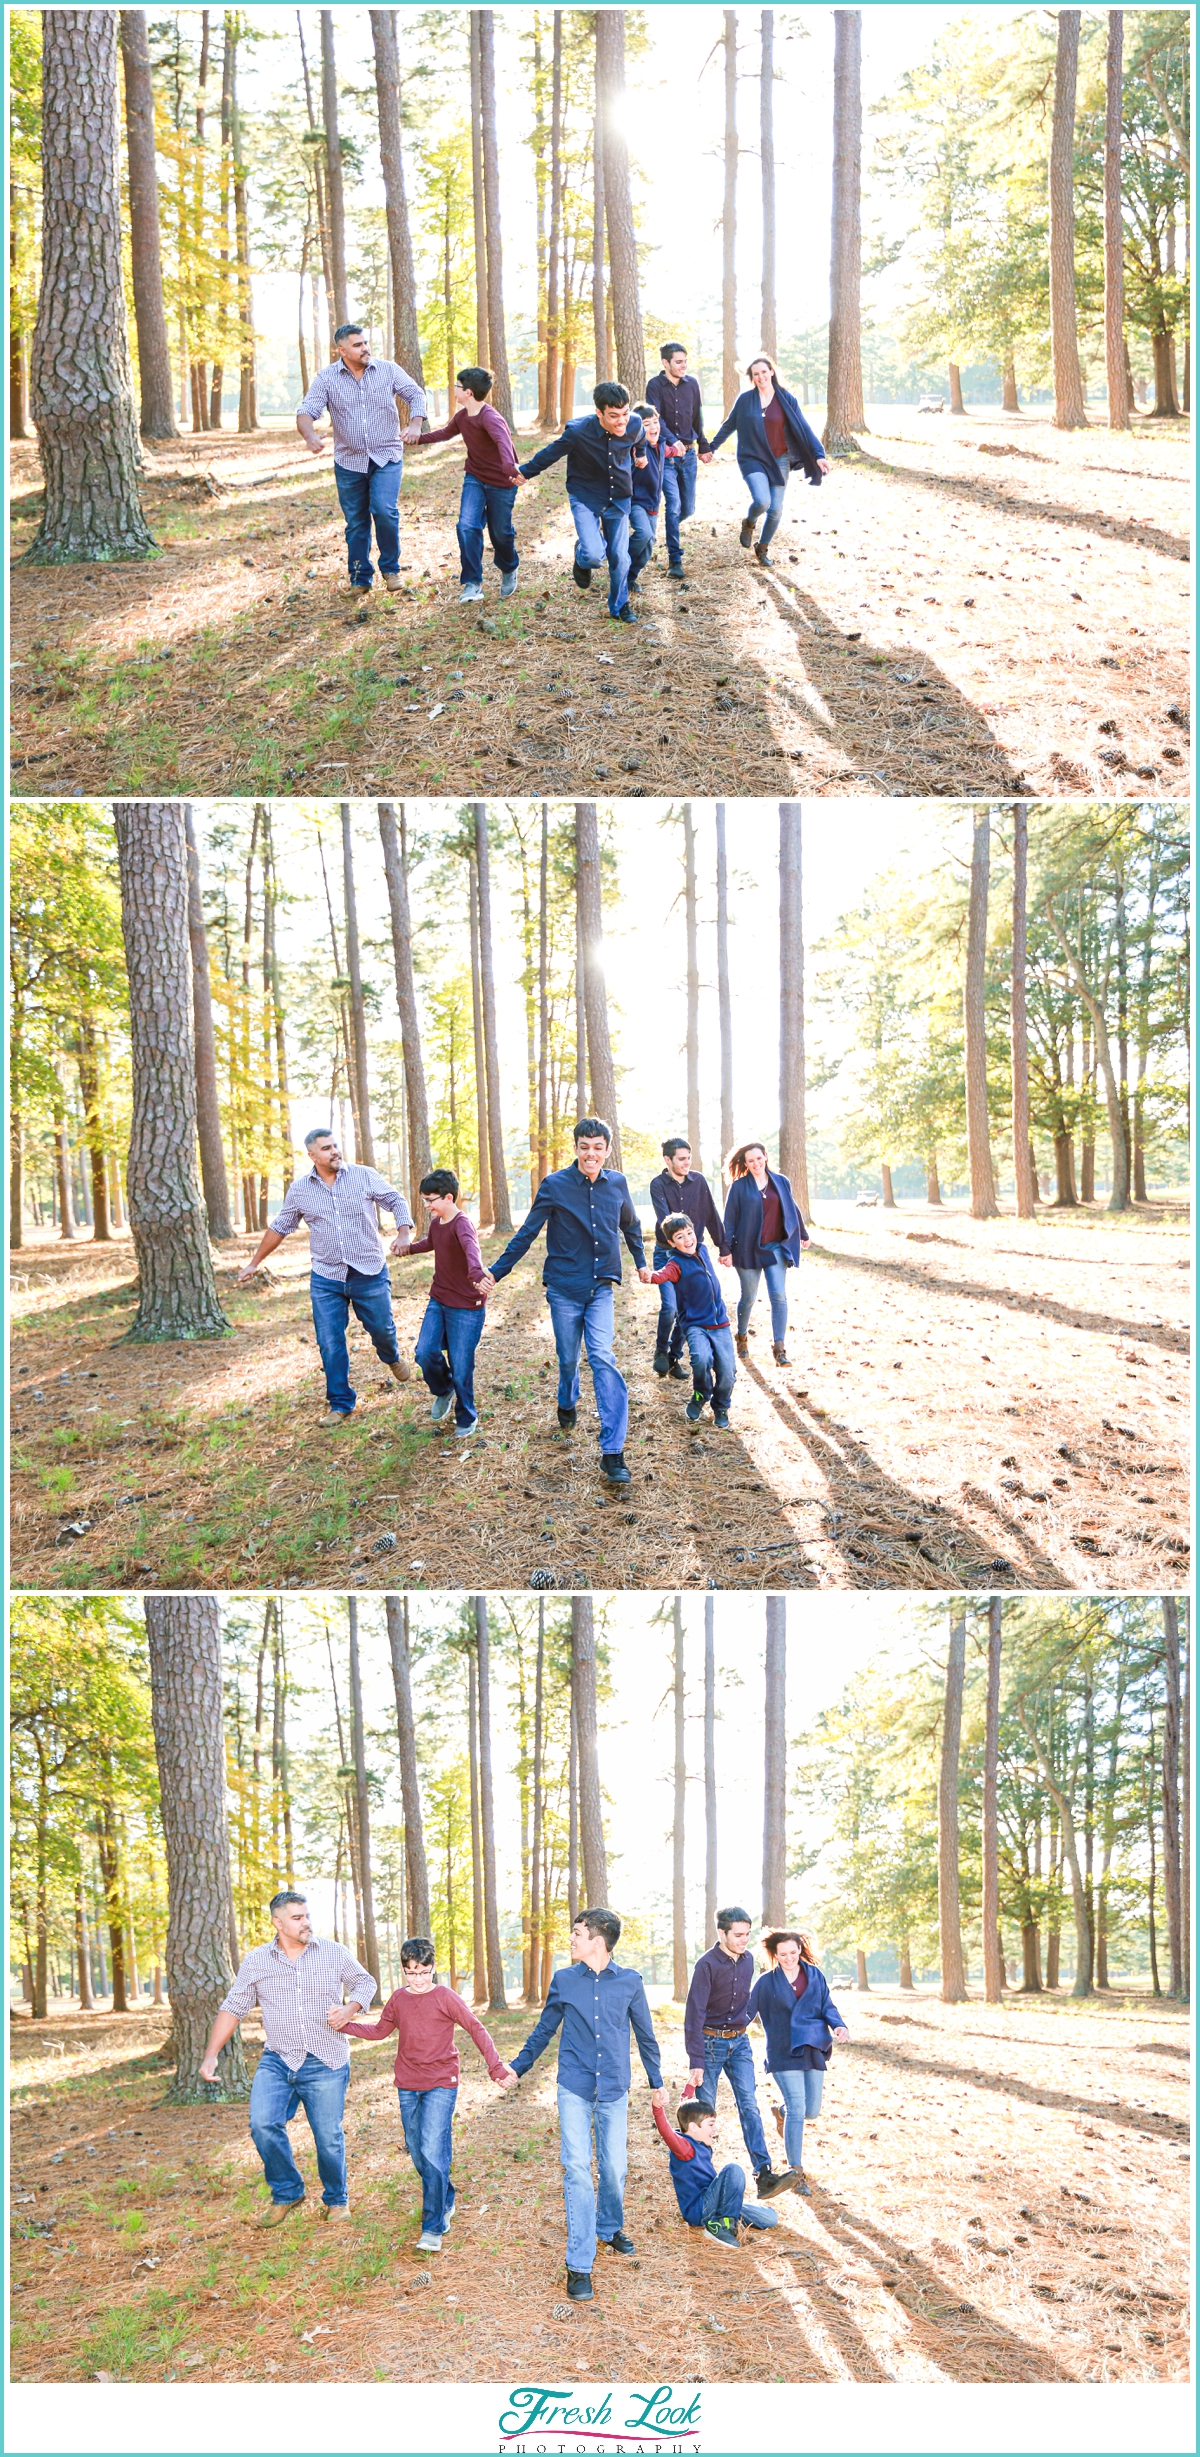 running together during family photos